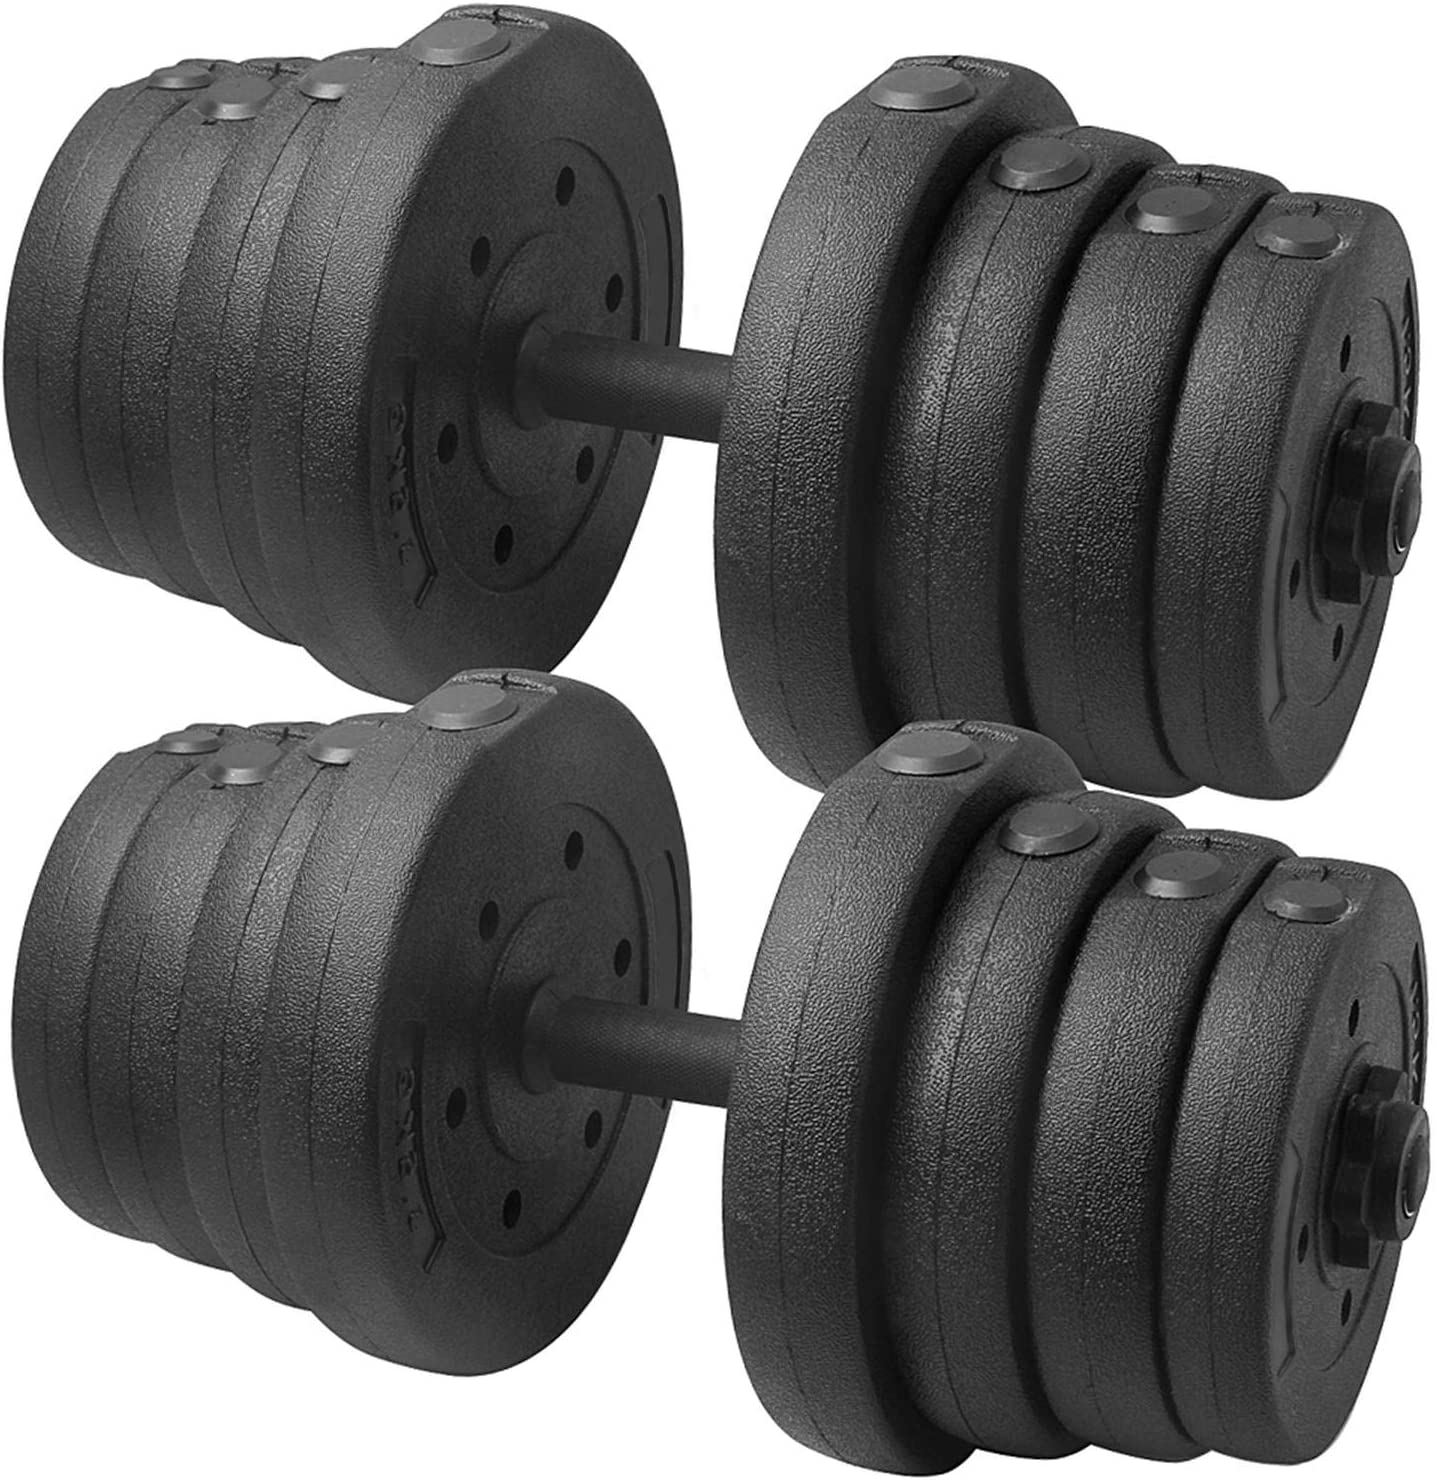 Dumbbells Weight set  plates 30 kg adjustable  Weight lifting training Home